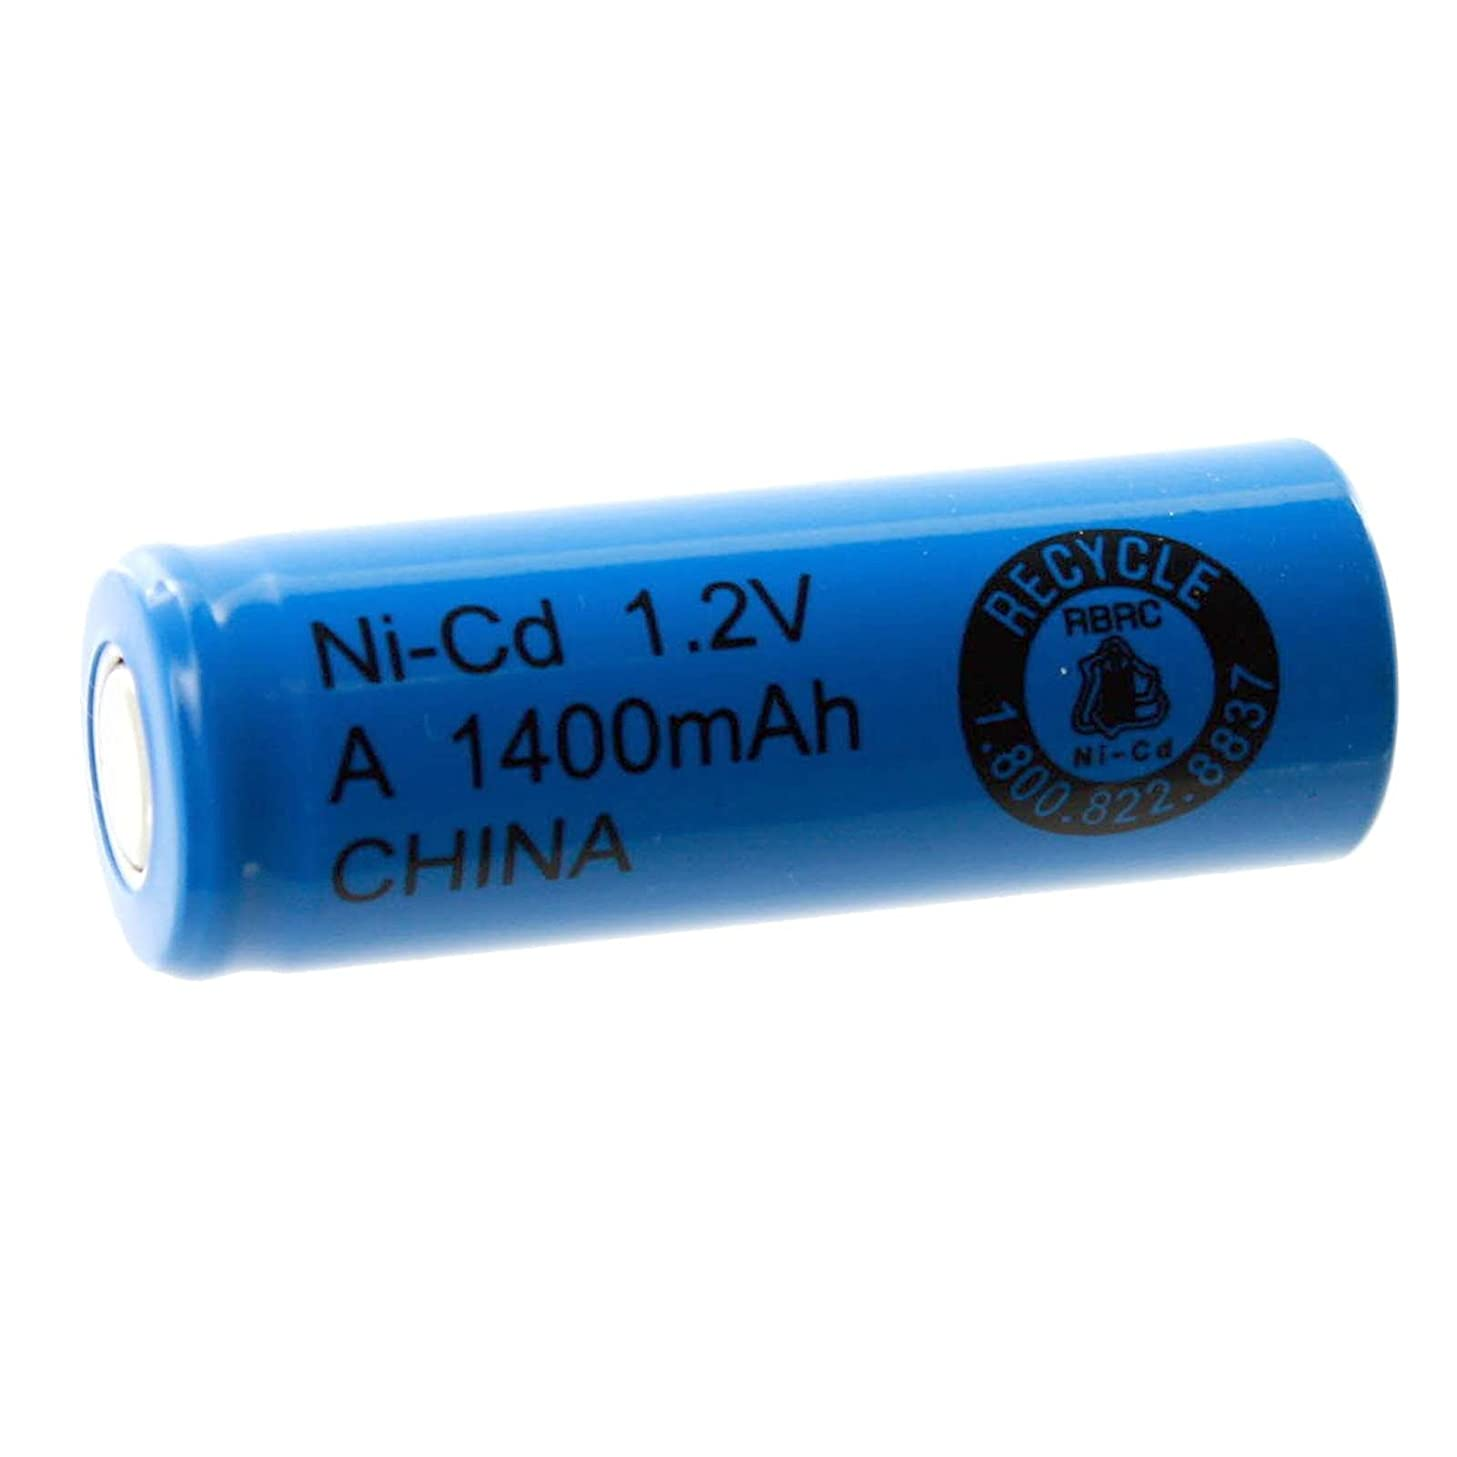 Exell 1.2V 1400mAh NiCD A Rechargeable Battery Flat Top Cell Fast USA Ship